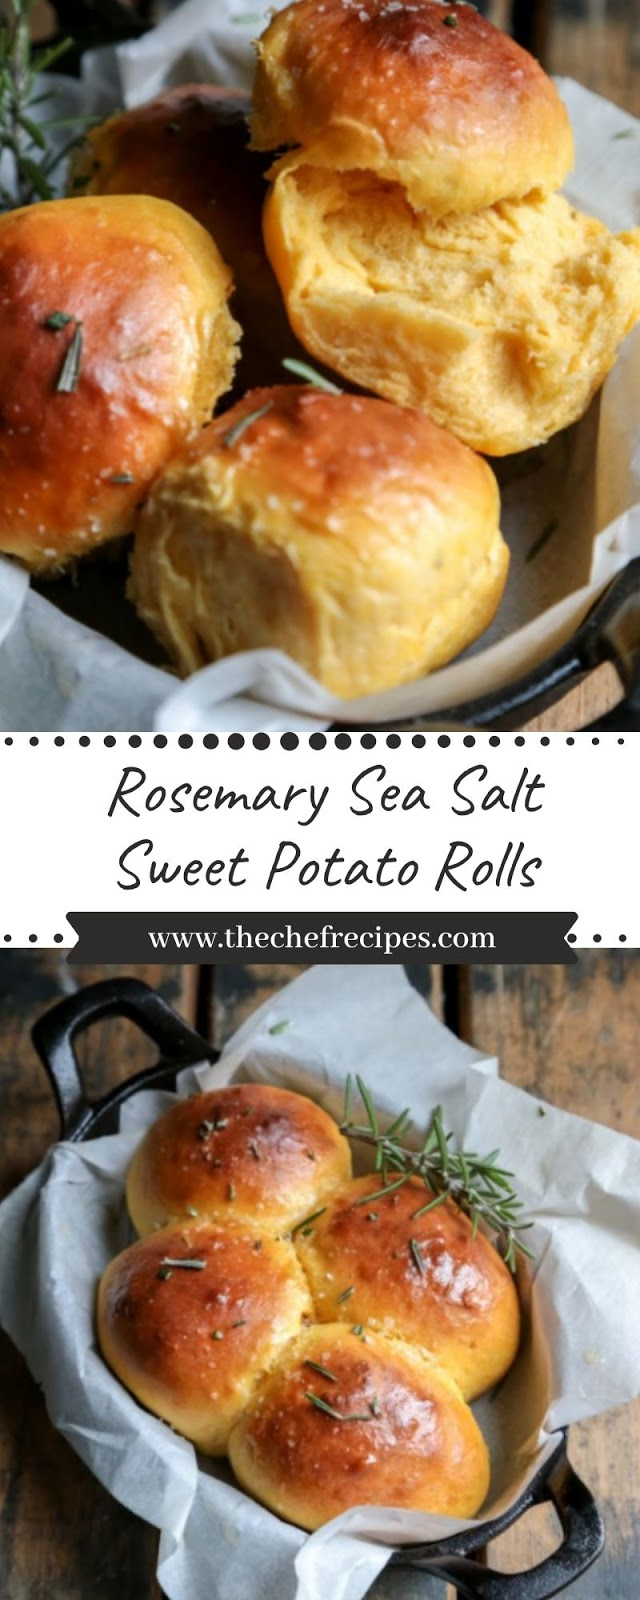 Rosemary Sea Salt Sweet Potato Rolls